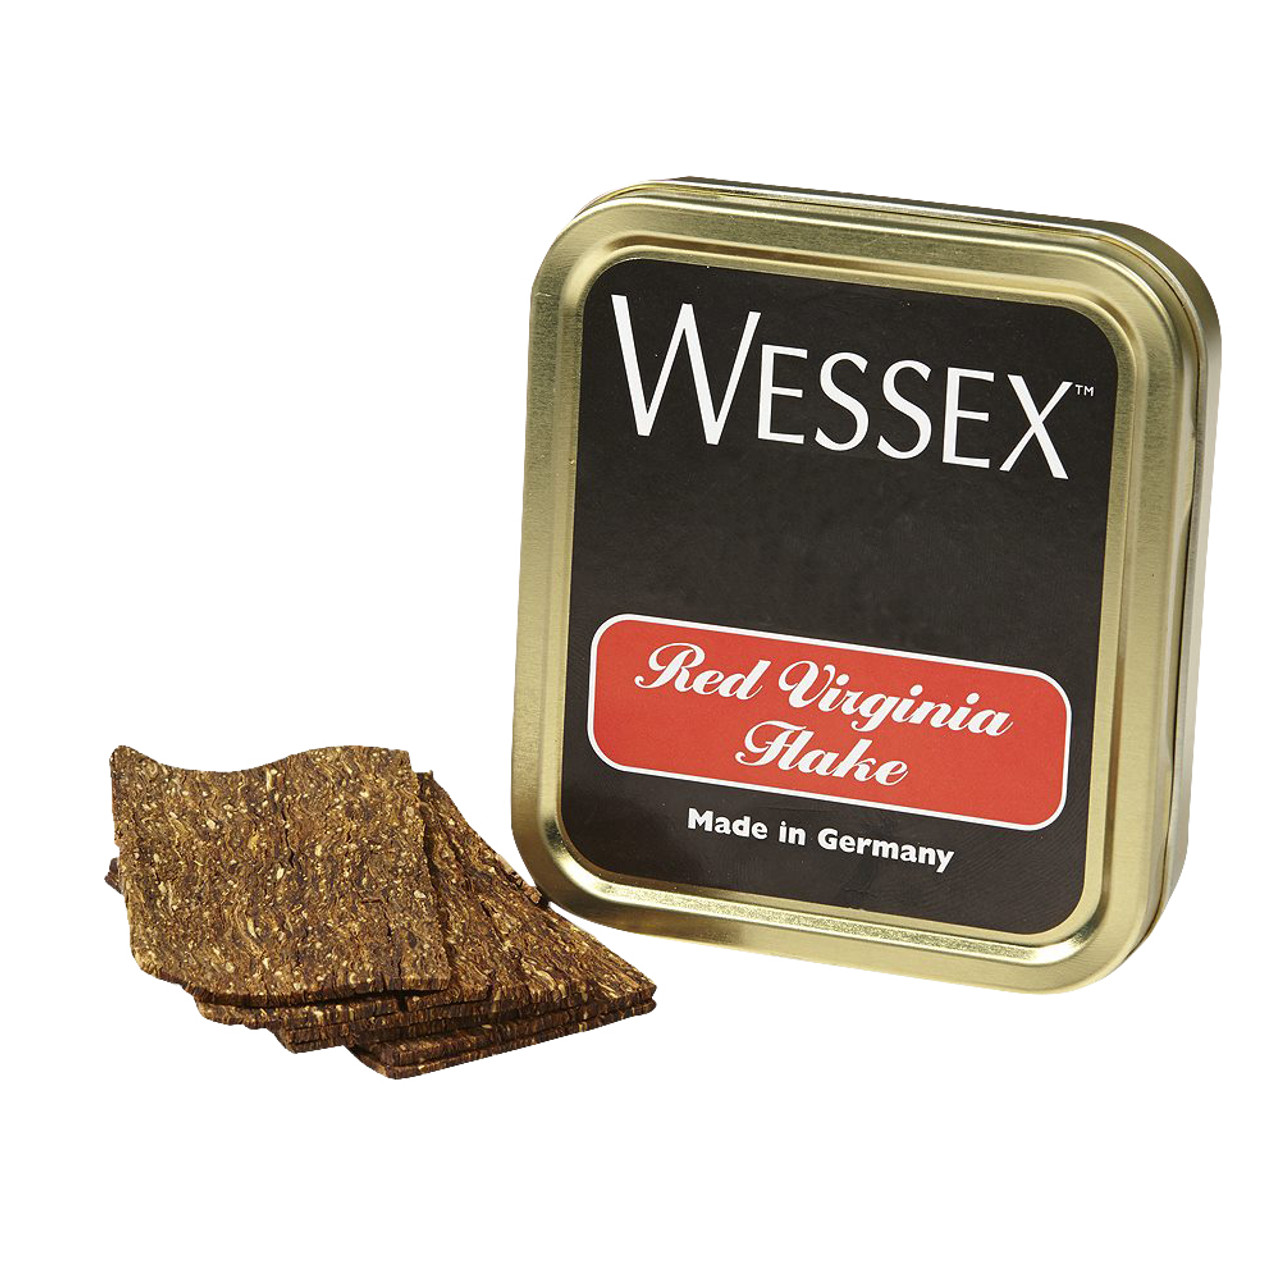 Wessex Red Virginia Flake Pipe Tobacco | 1.75 OZ TIN